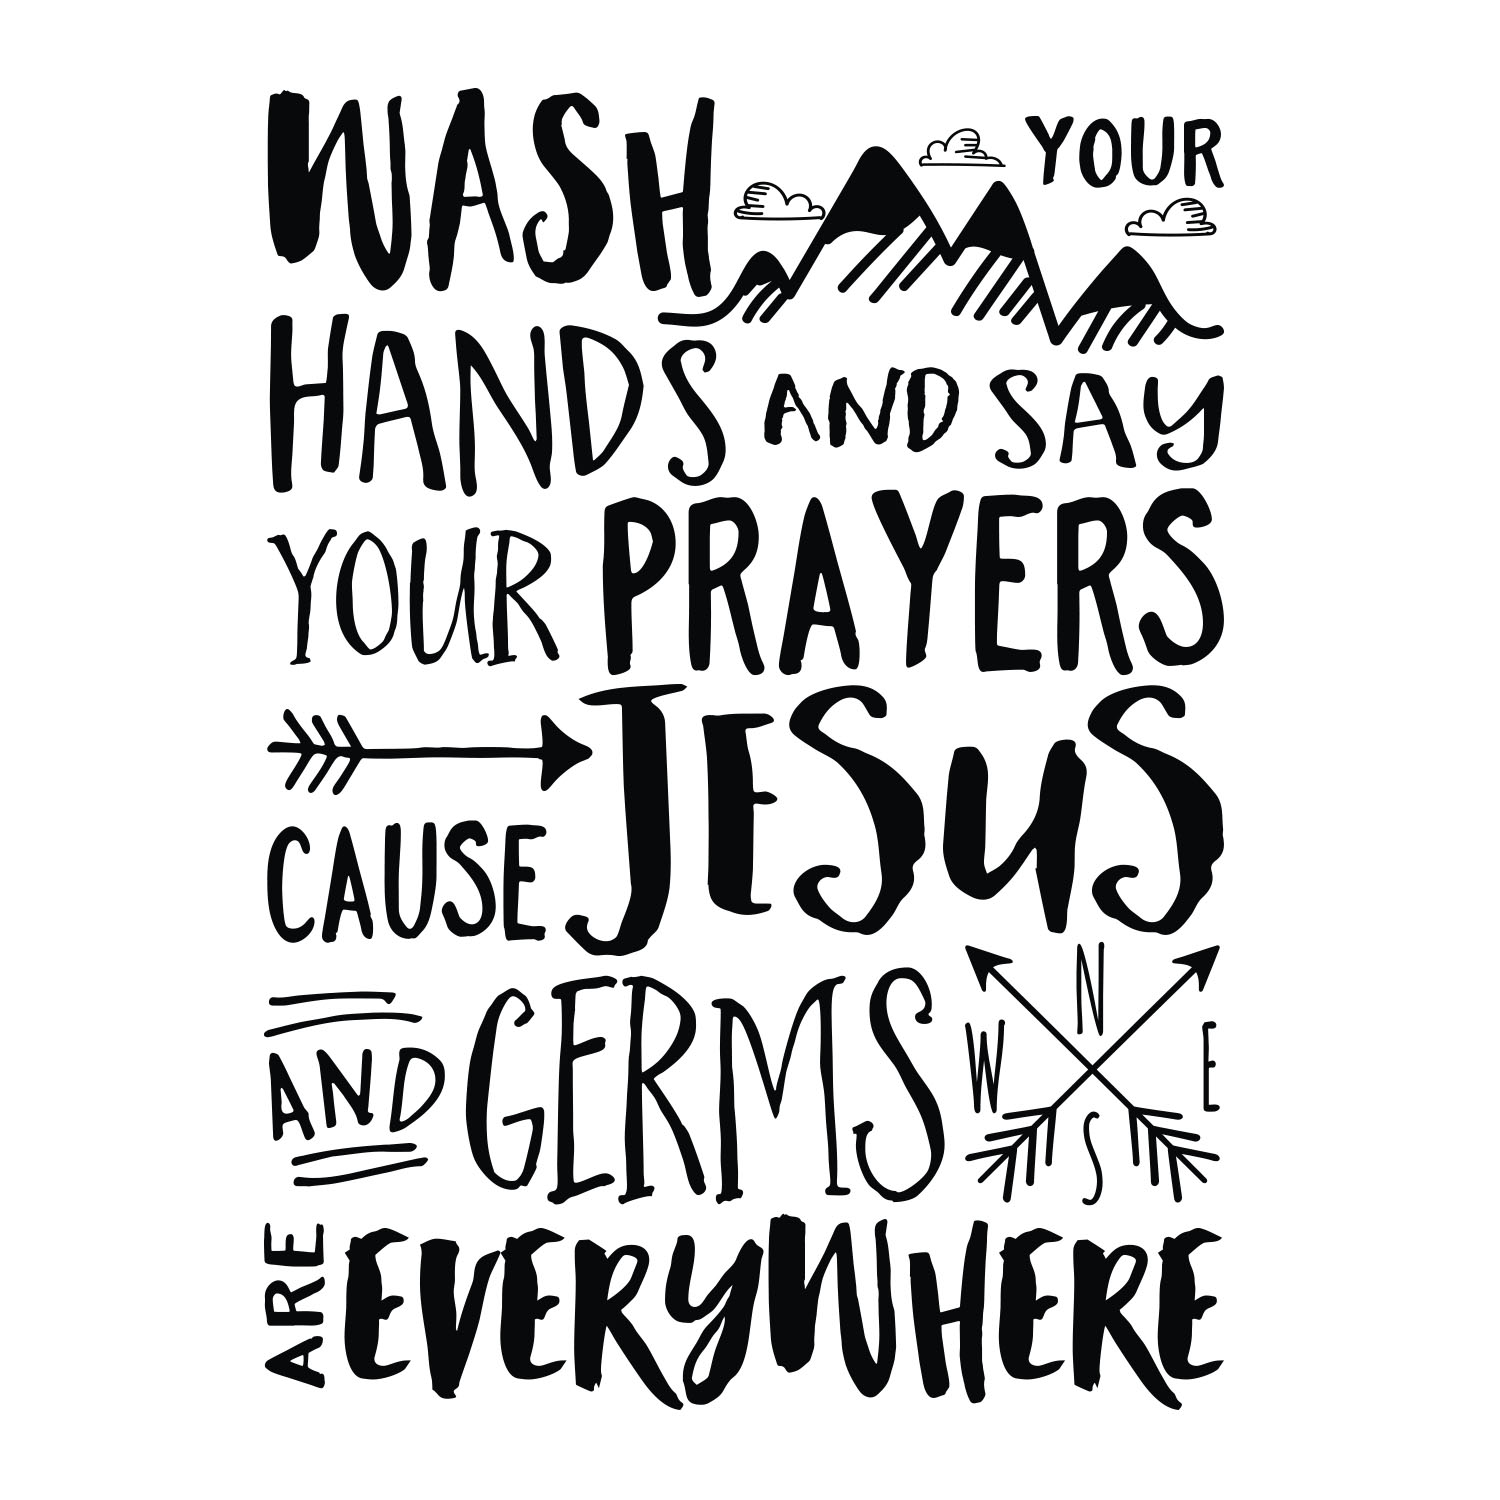 wash your hands and say your prayers cause jesus and germs auto